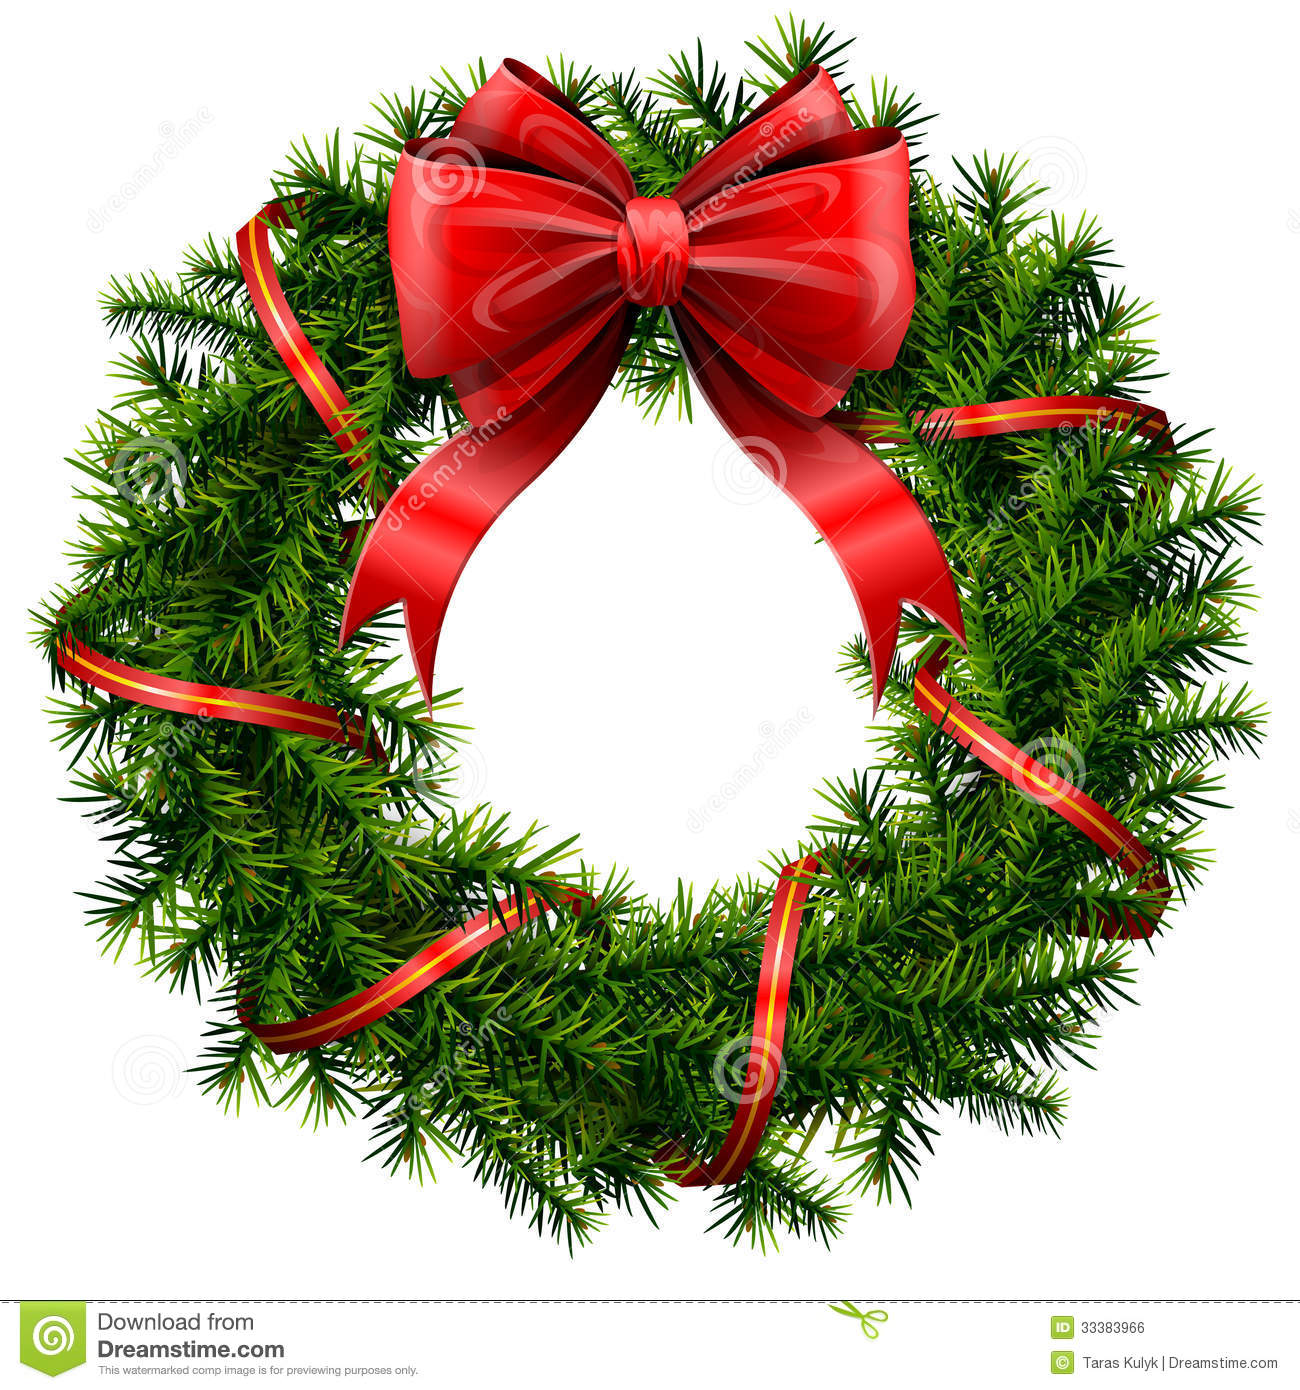 Christmas Wreath With Red Bow And Ribbon Stock Vector.